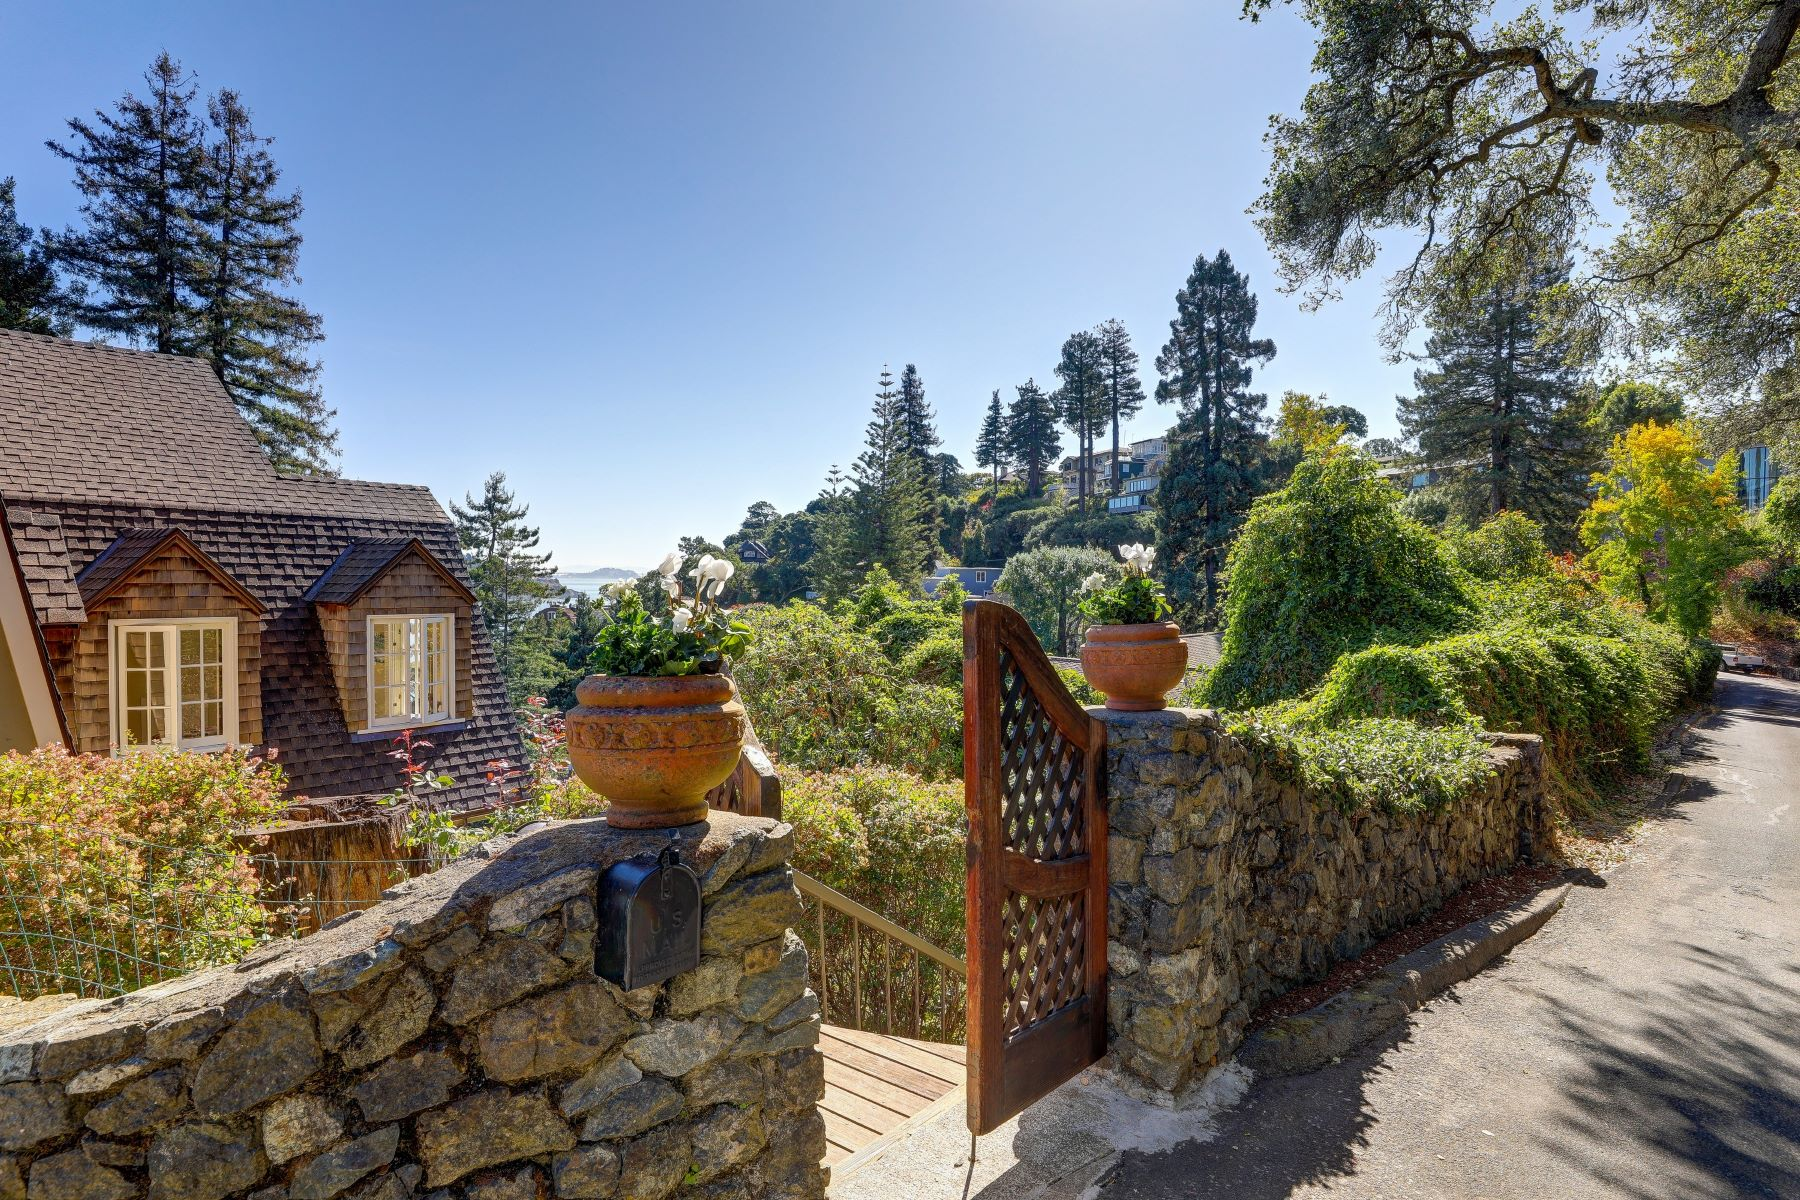 Single Family Homes for Sale at Turn-of-the Century Jewel with Spectacular Views 370 Bella Vista Ave Belvedere, California 94920 United States